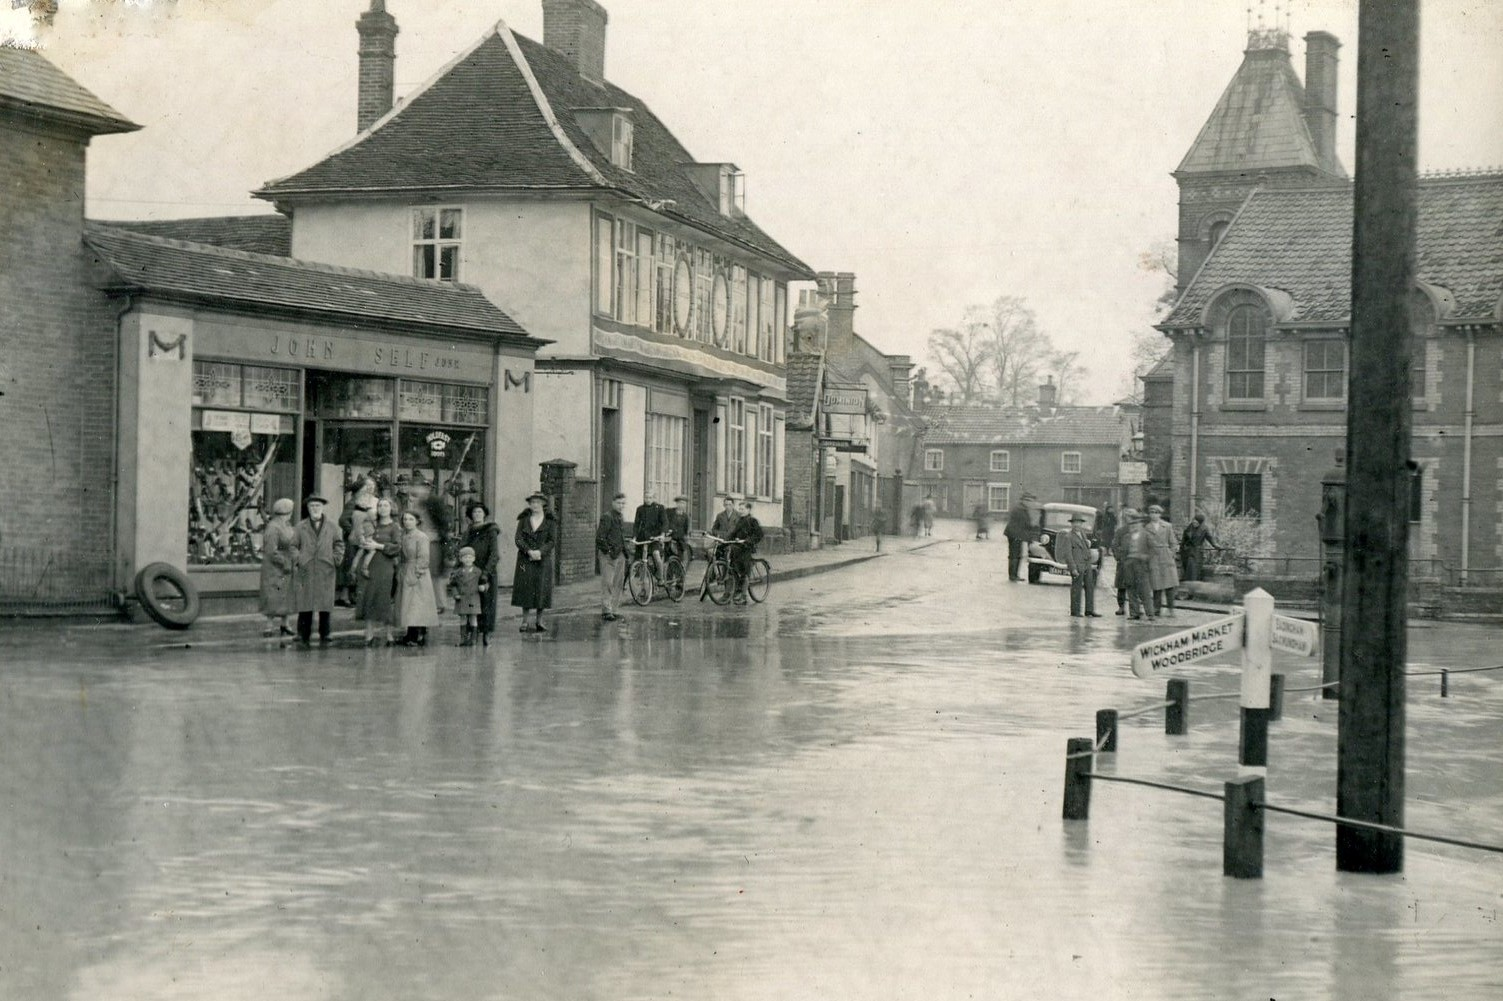 Albert Place flood